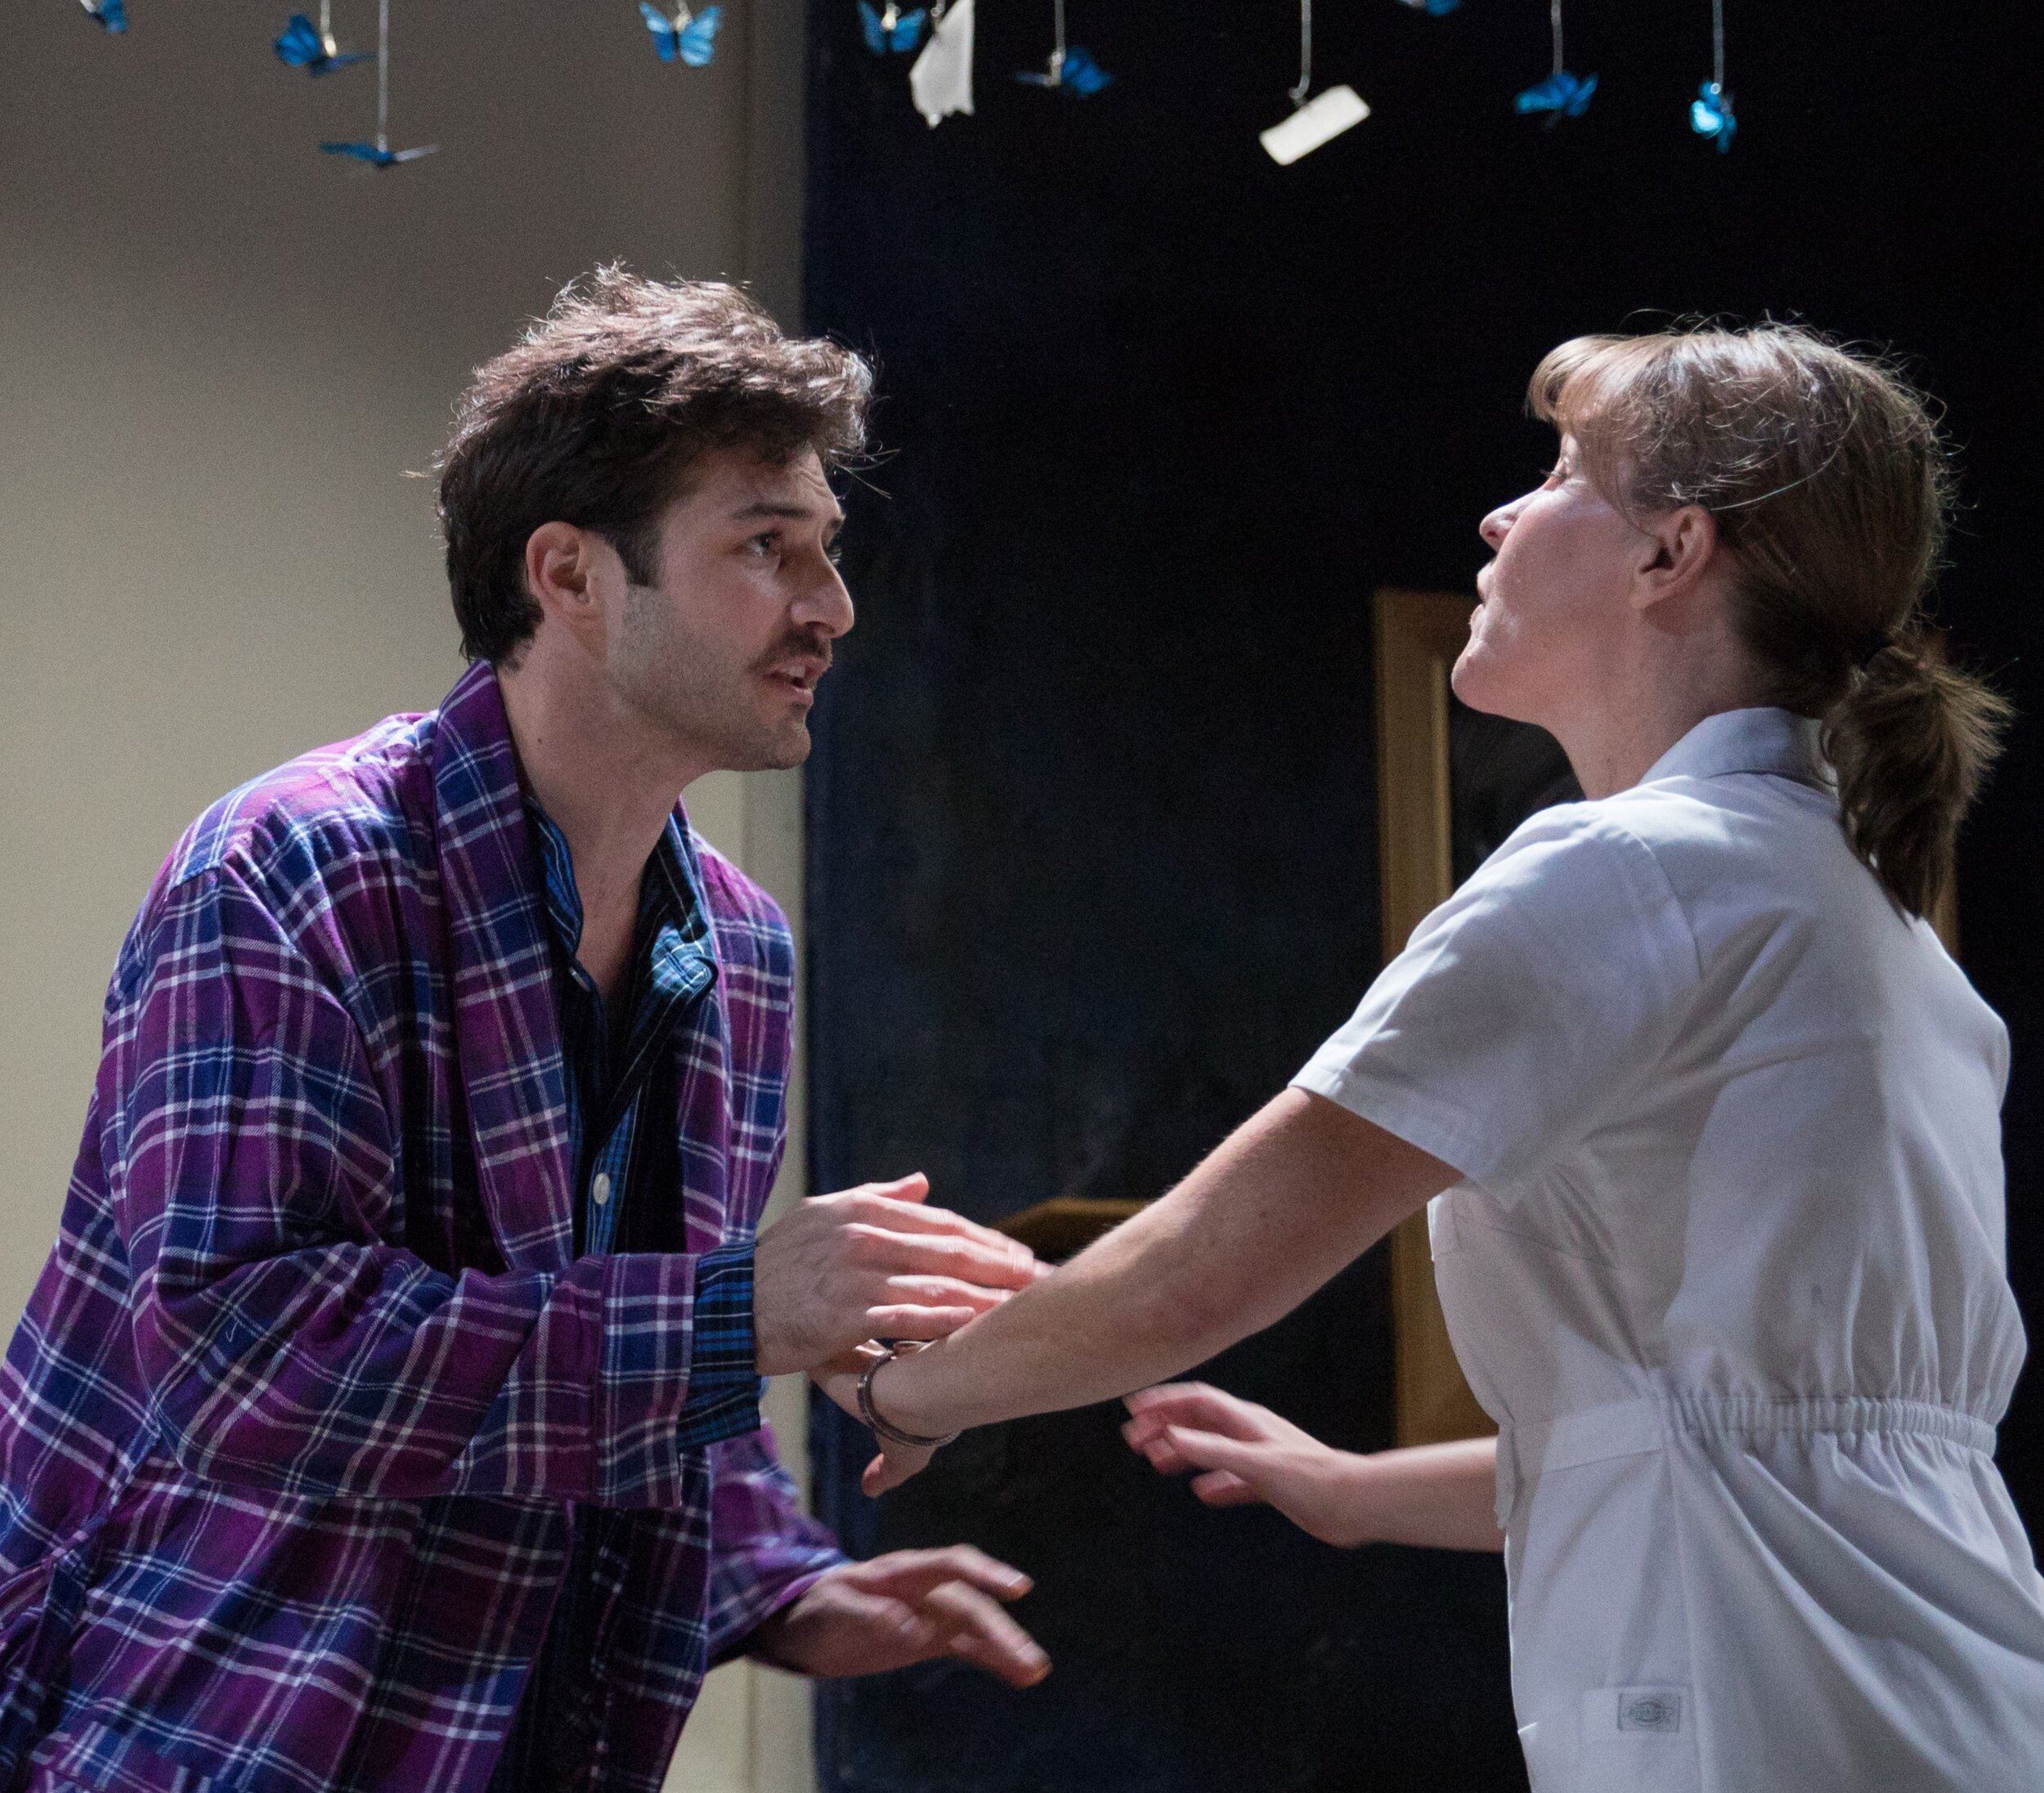 JB (Justin Genna) outlines his dreams of future dances to Nurse No. 1 (Kelly McAndrew) while succumbing to AIDS.